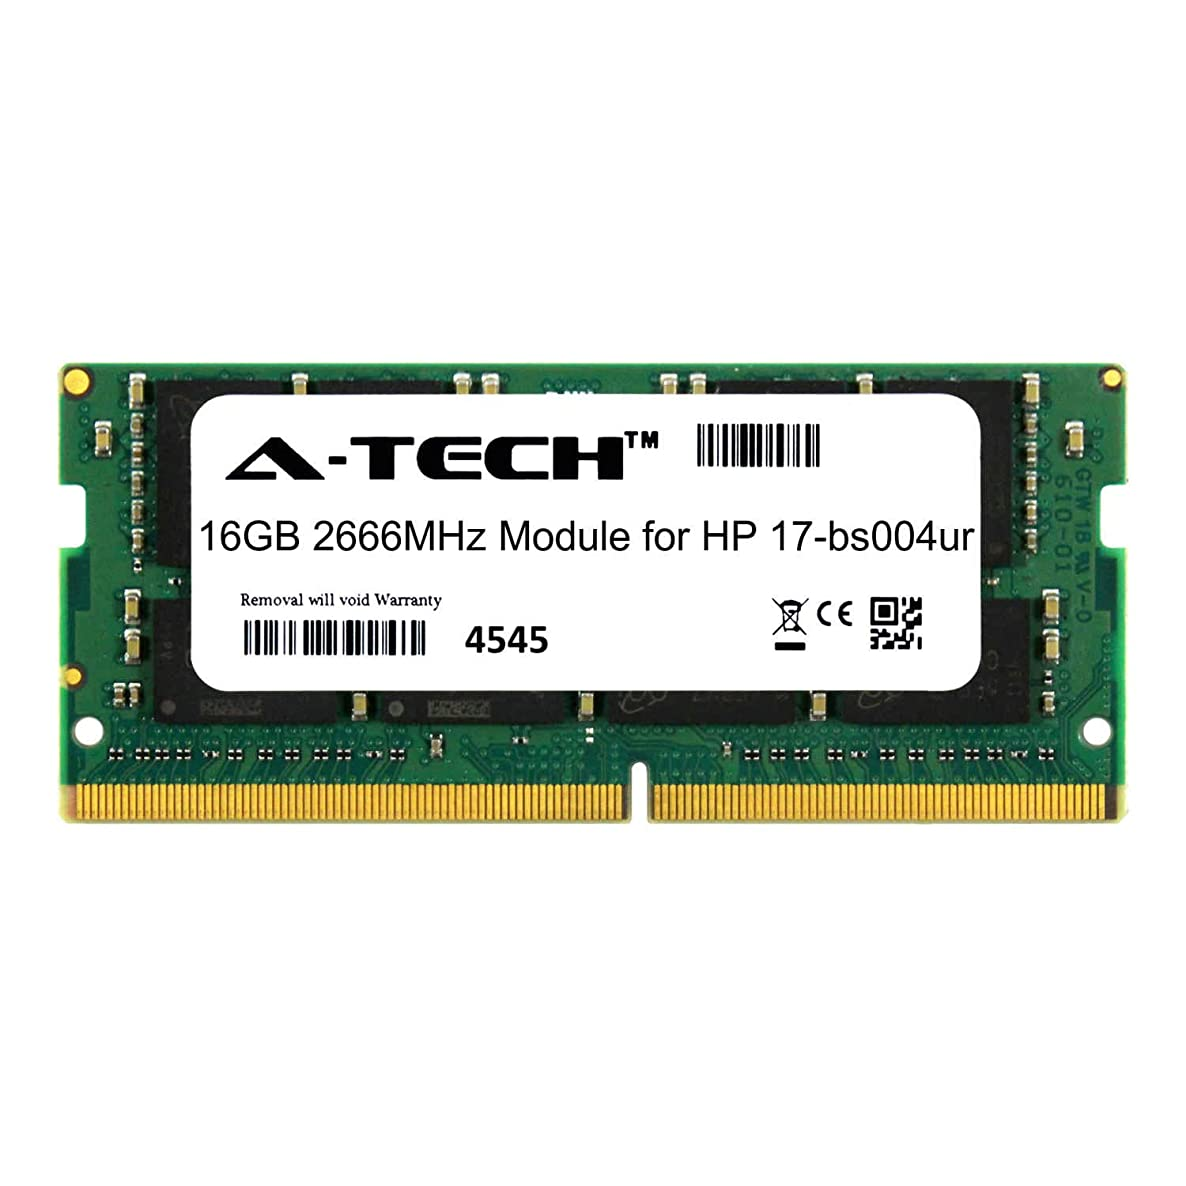 A-Tech 16GB Module for HP 17-bs004ur Laptop & Notebook Compatible DDR4 2666Mhz Memory Ram (ATMS382483A25832X1)